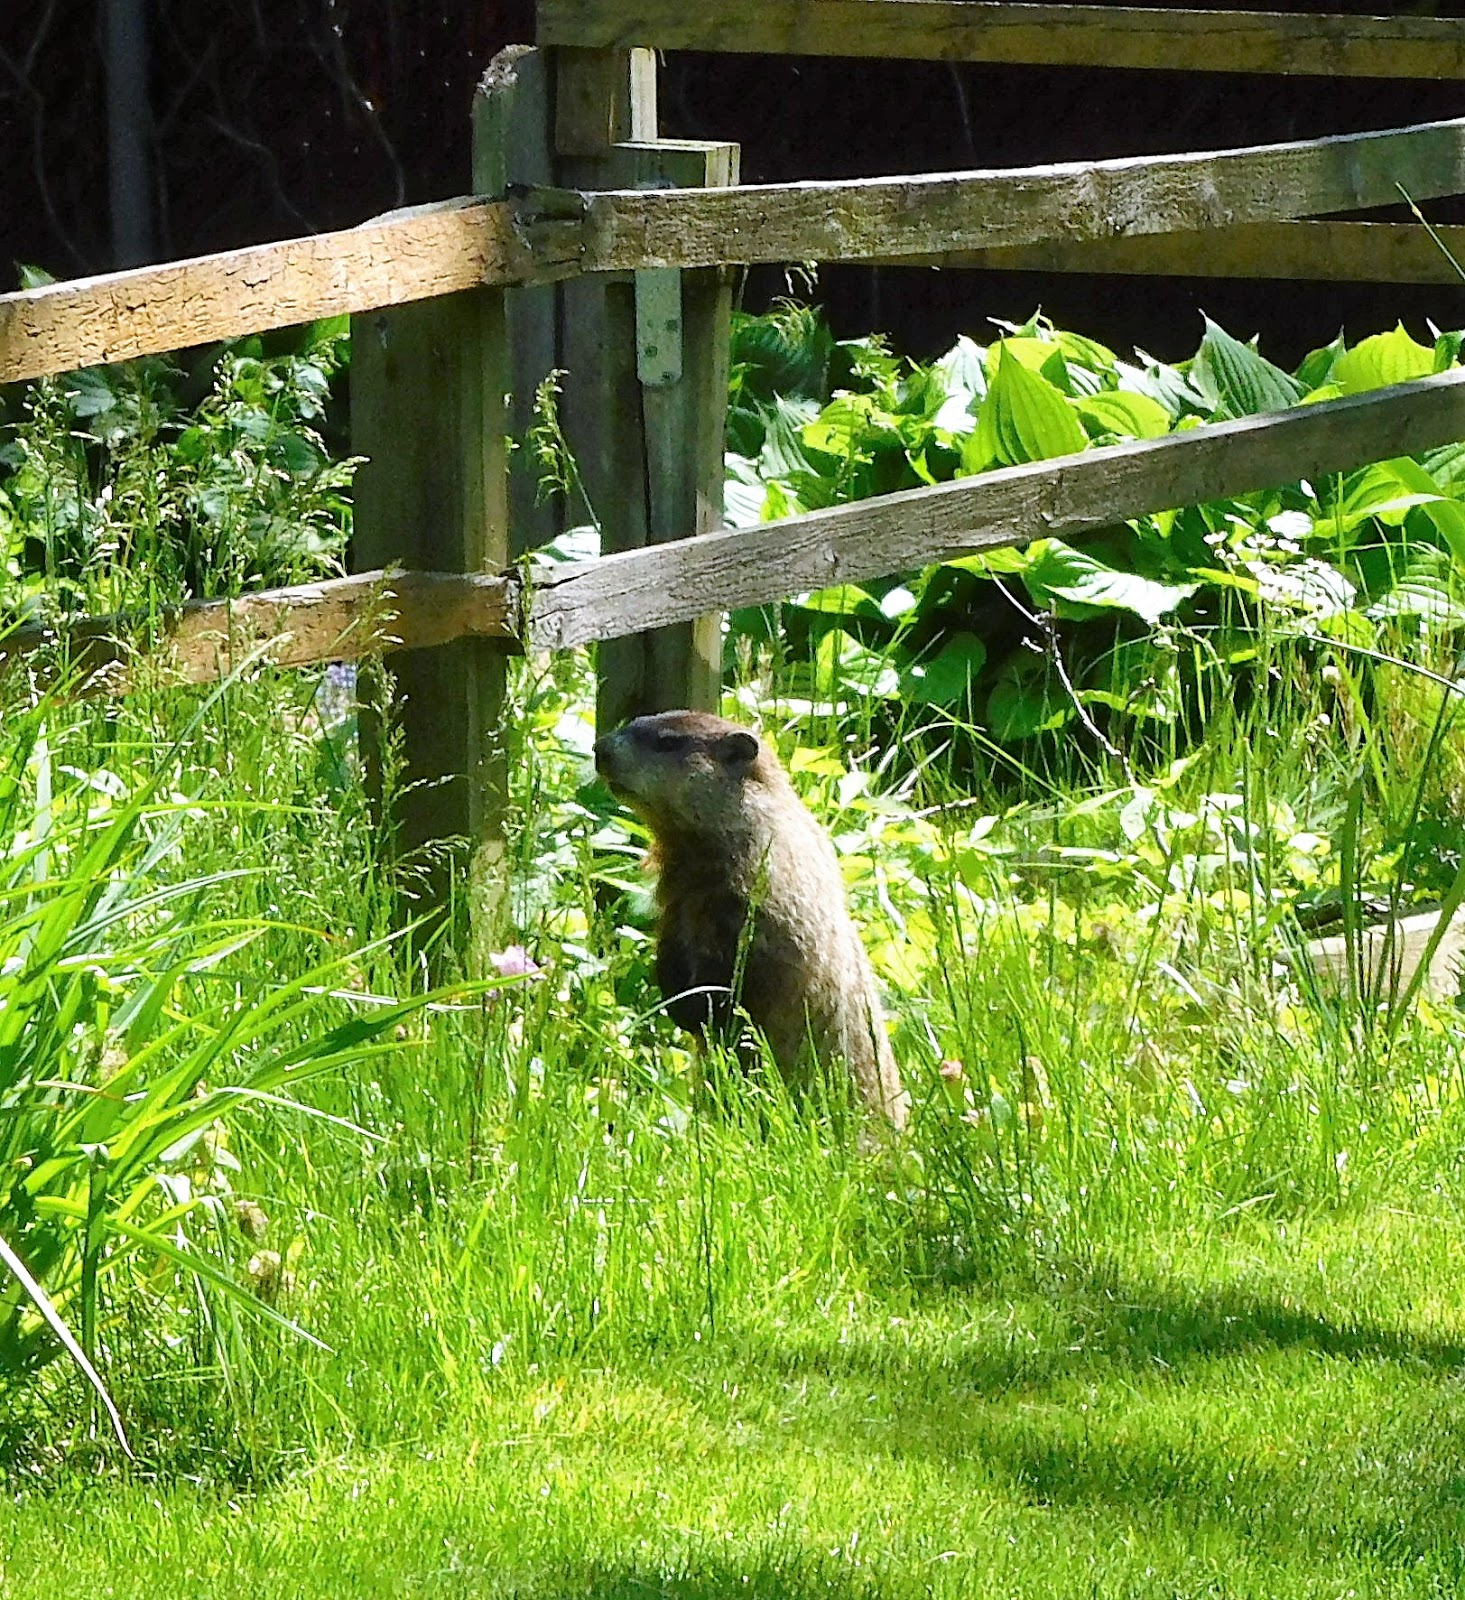 The Other Day I Spotted This Groundhog